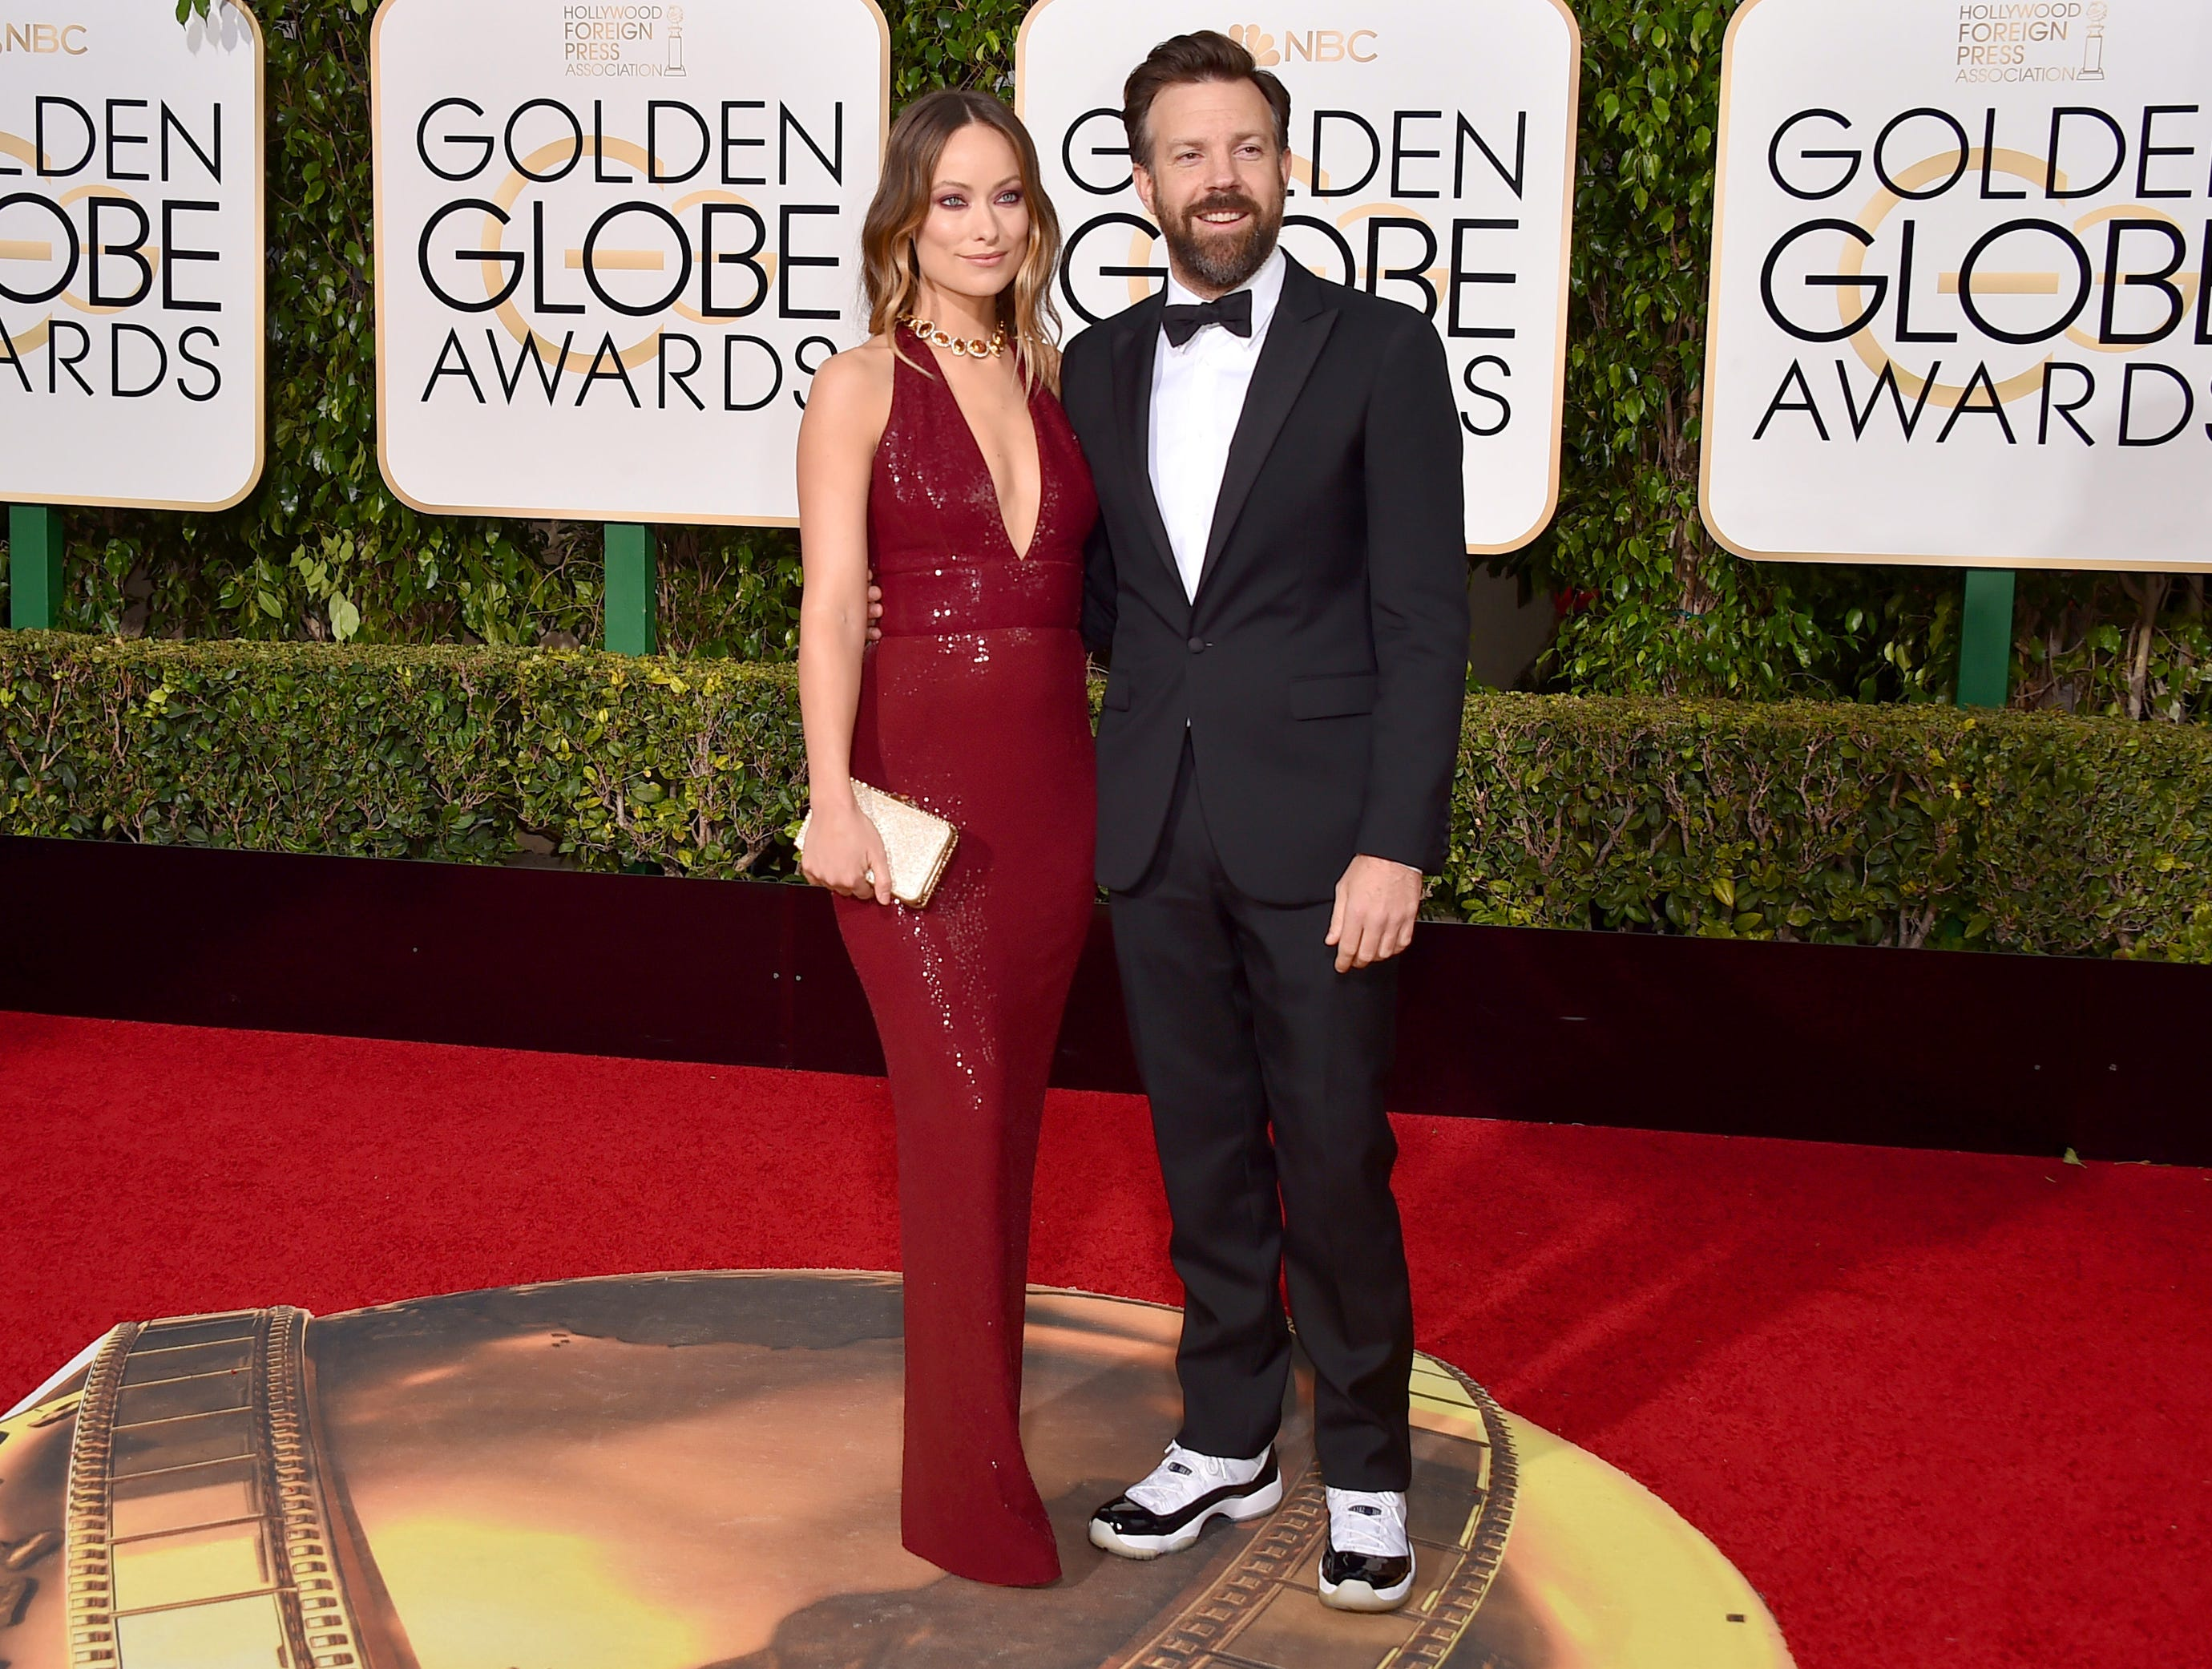 Olivia Wilde, left, and Jason Sudeikis arrive at the 73rd annual Golden Globe Awards on Sunday, Jan. 10, 2016, at the Beverly Hilton Hotel in Beverly Hills, Calif. (Photo by Jordan Strauss/Invision/AP) ORG XMIT: CACJ238